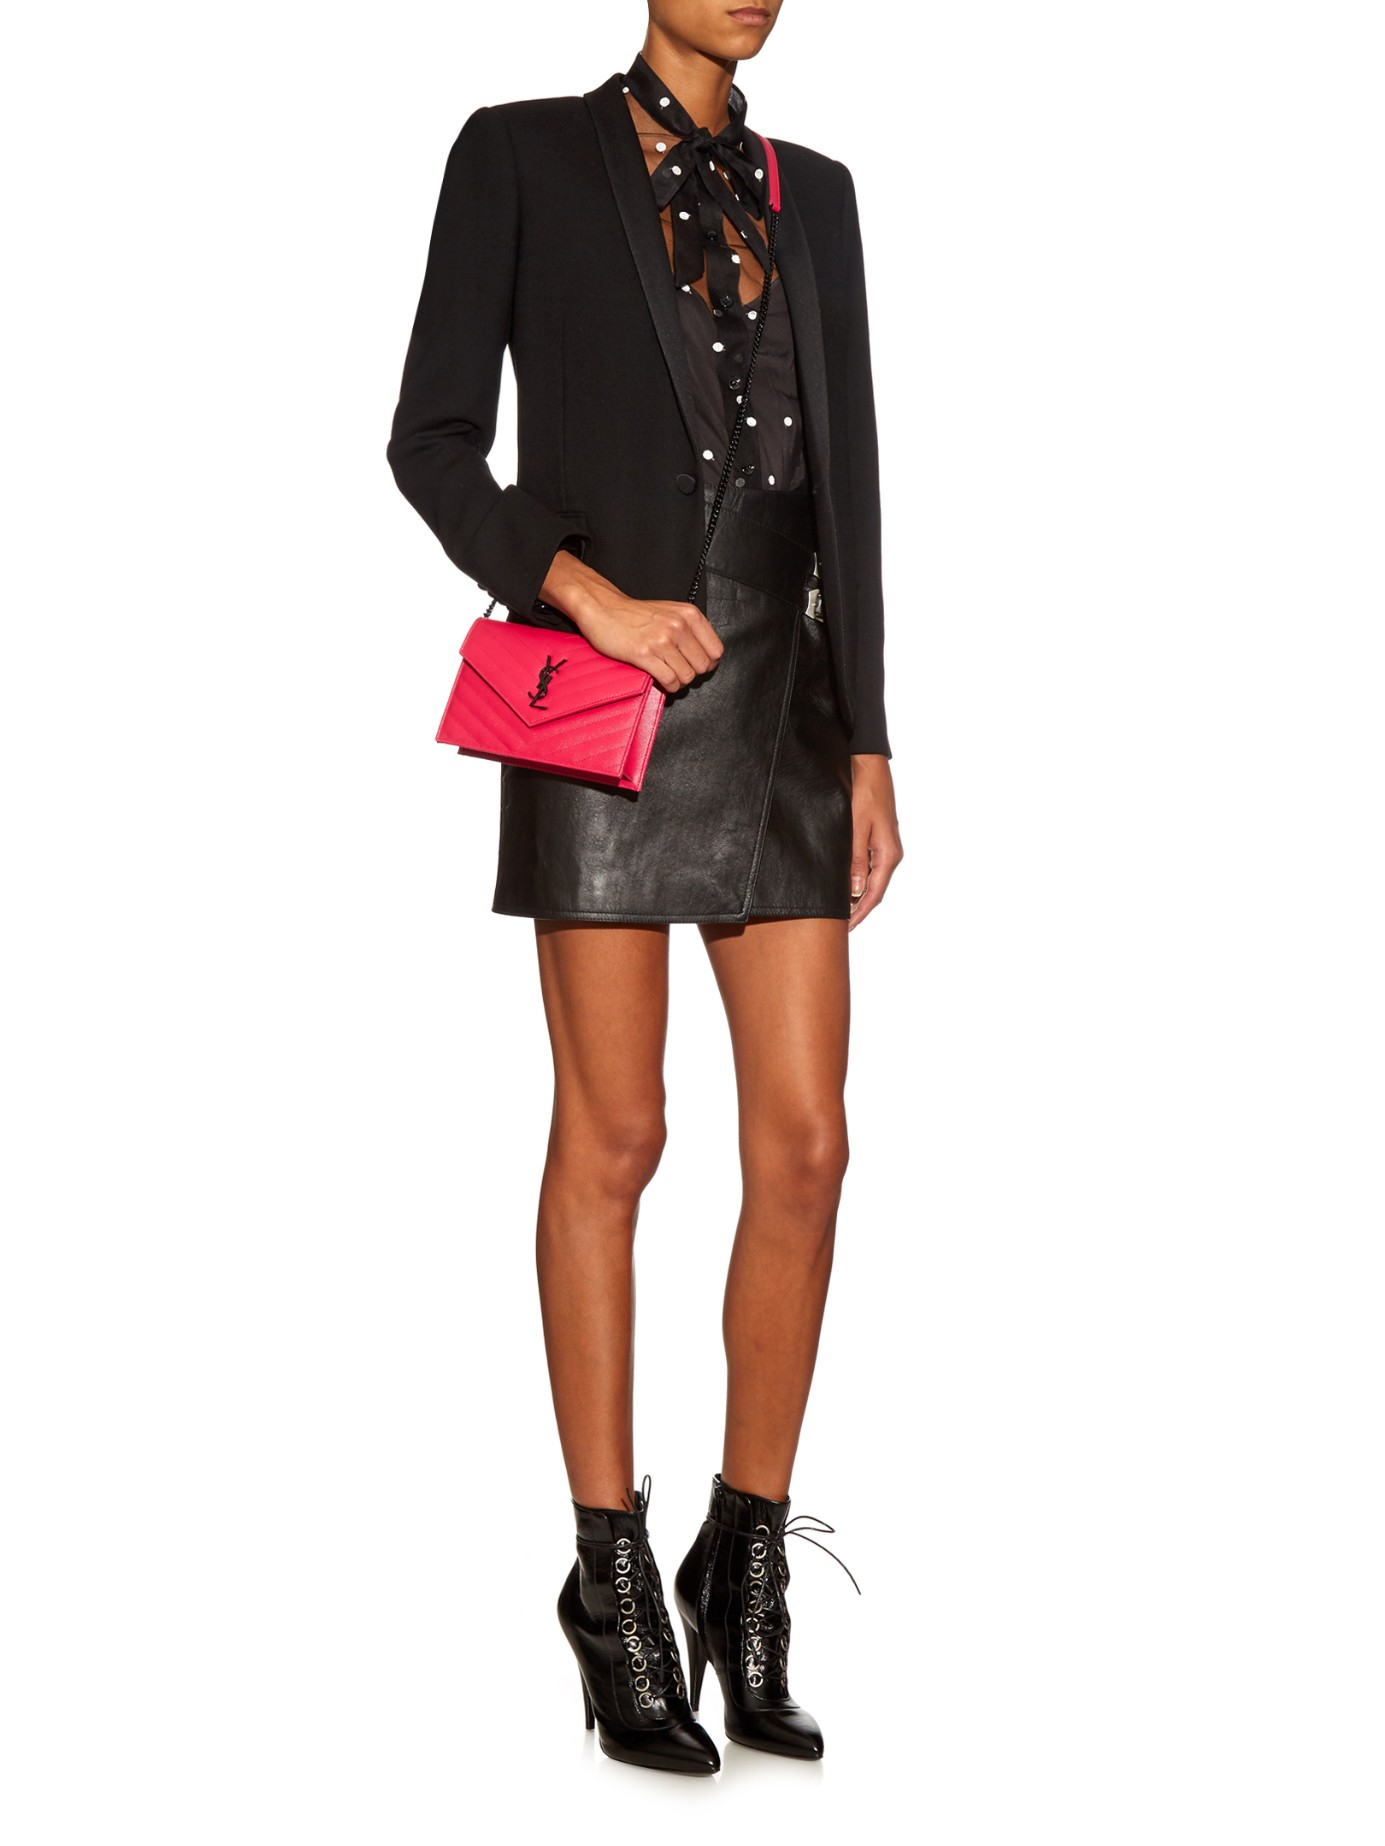 Lyst - Saint Laurent Monogram Quilted-Leather Cross-body Bag in Pink 6098c4a4d9fbc